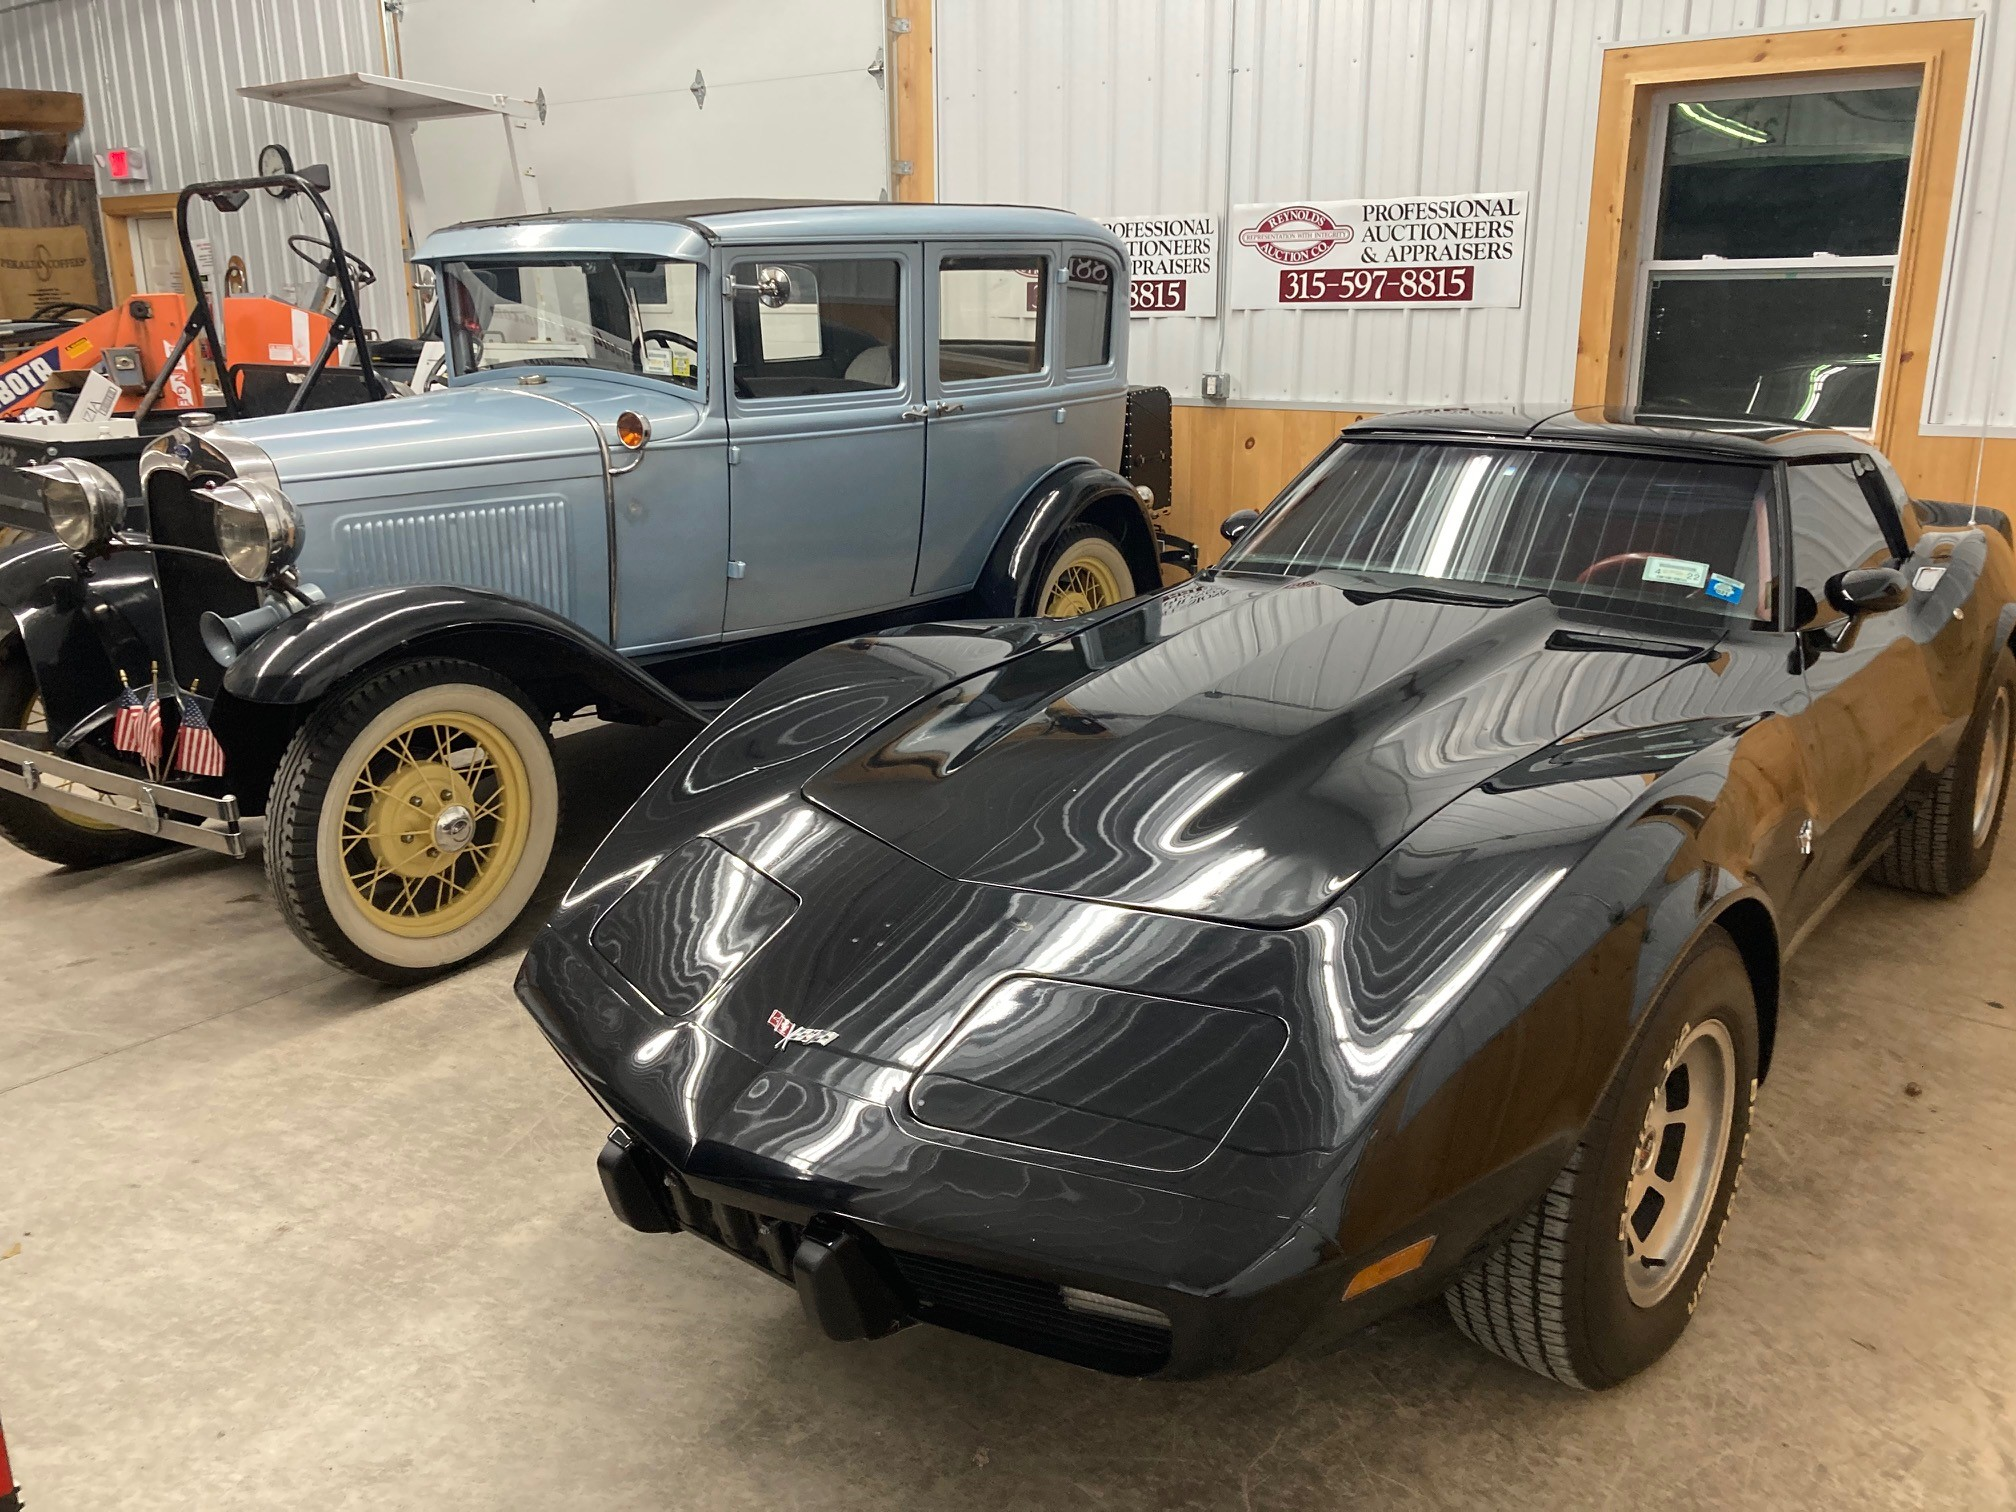 vehicles for auction by Reynolds Auction